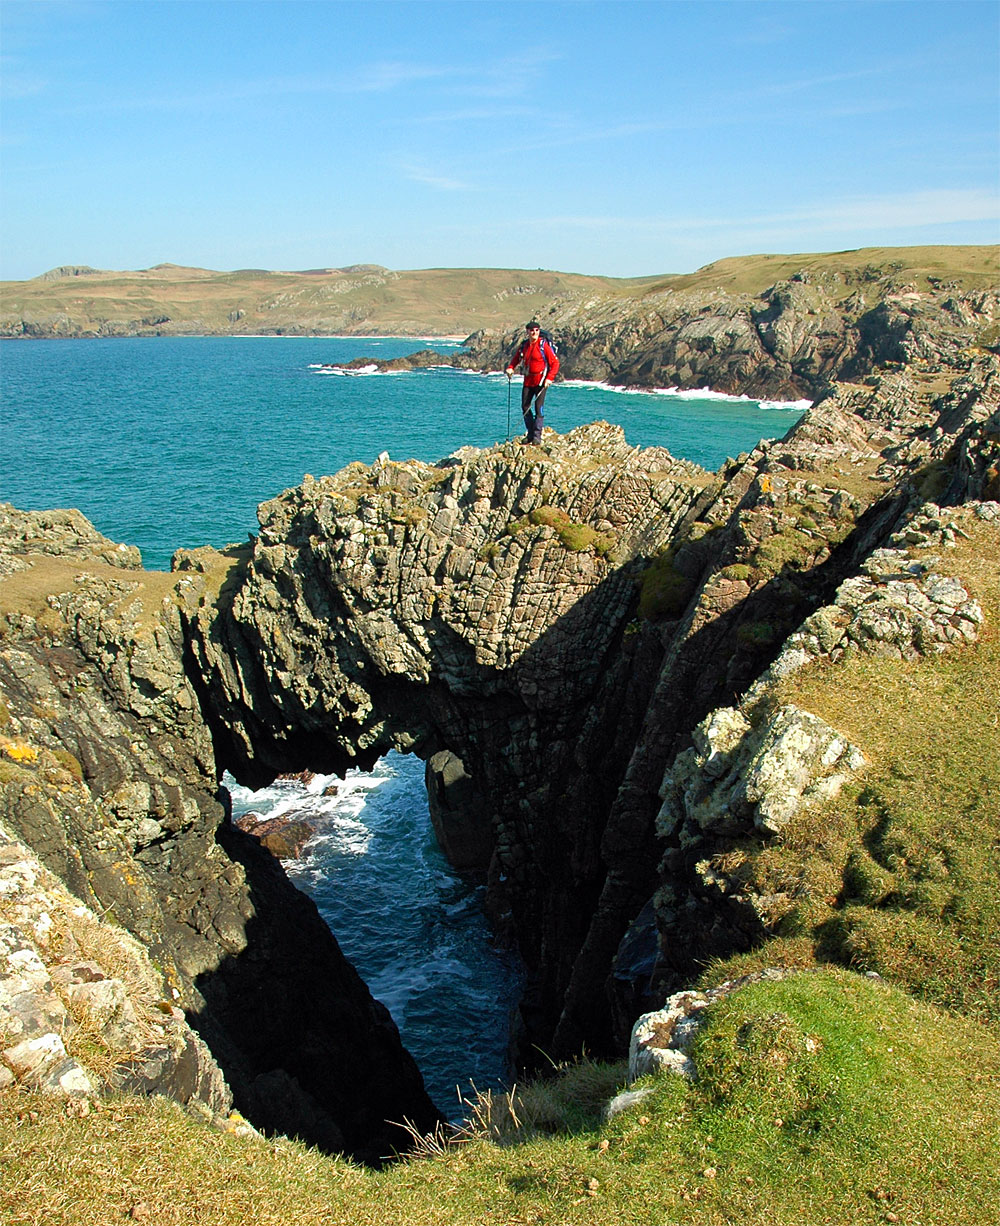 Picture of a walker on top of a natural arch in cliffs along a shore